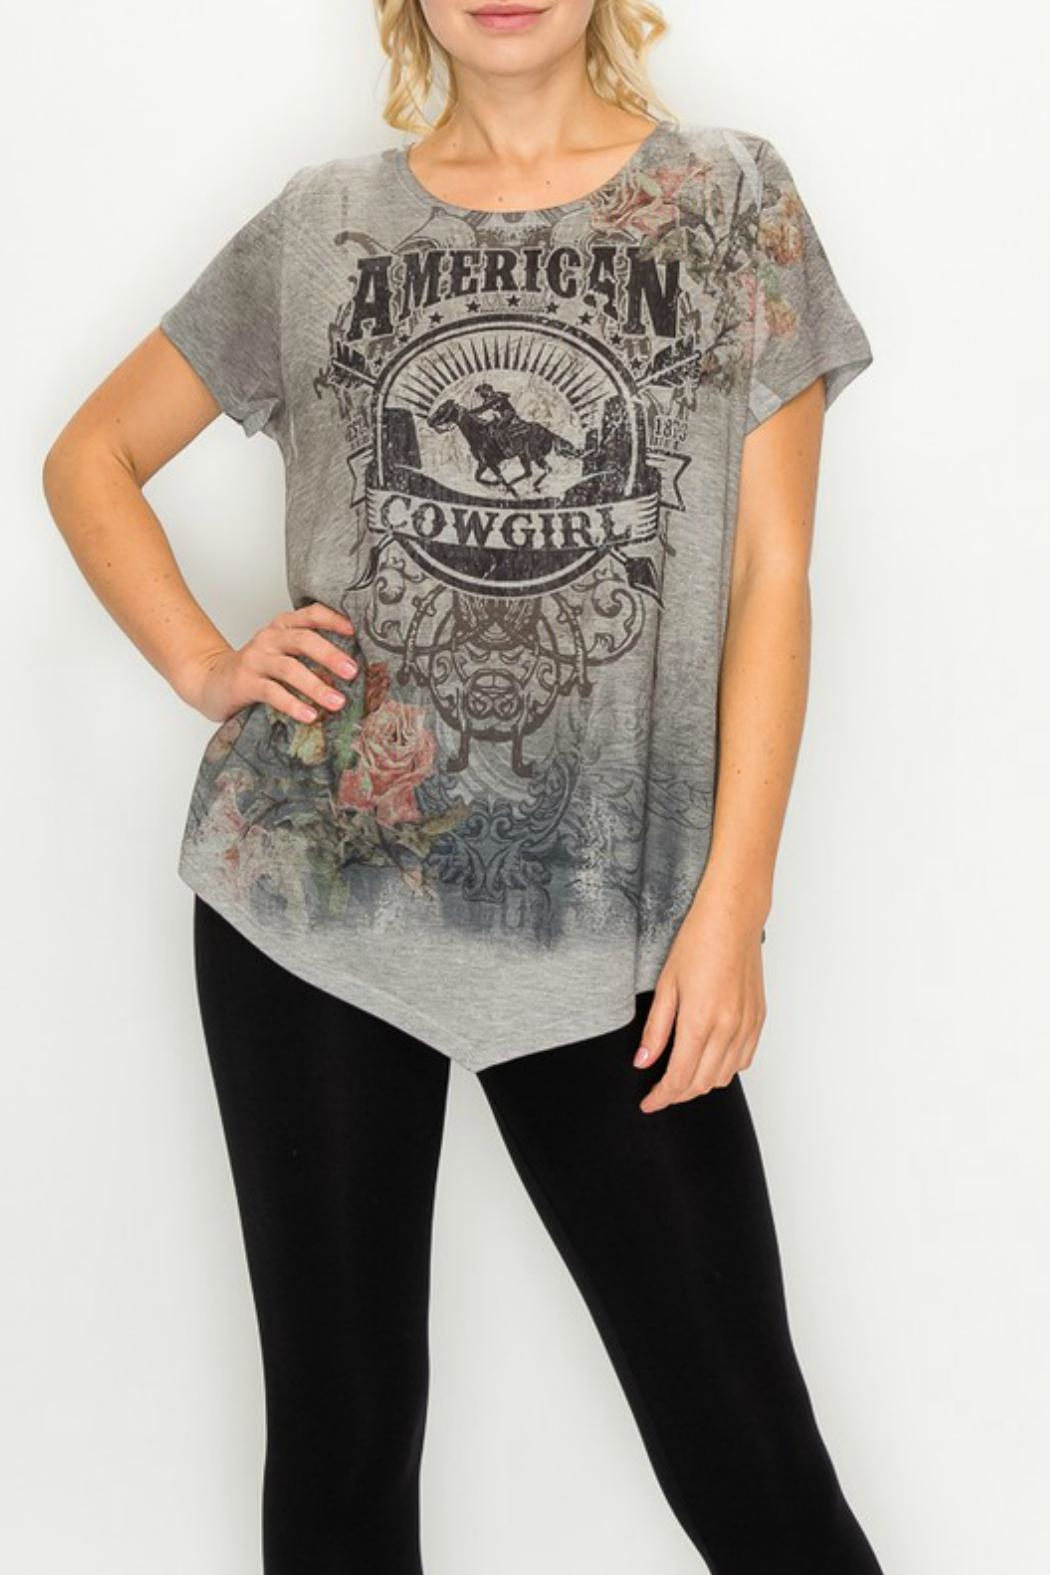 Origami Graphic-Tee - American Cowgirl - Main Image